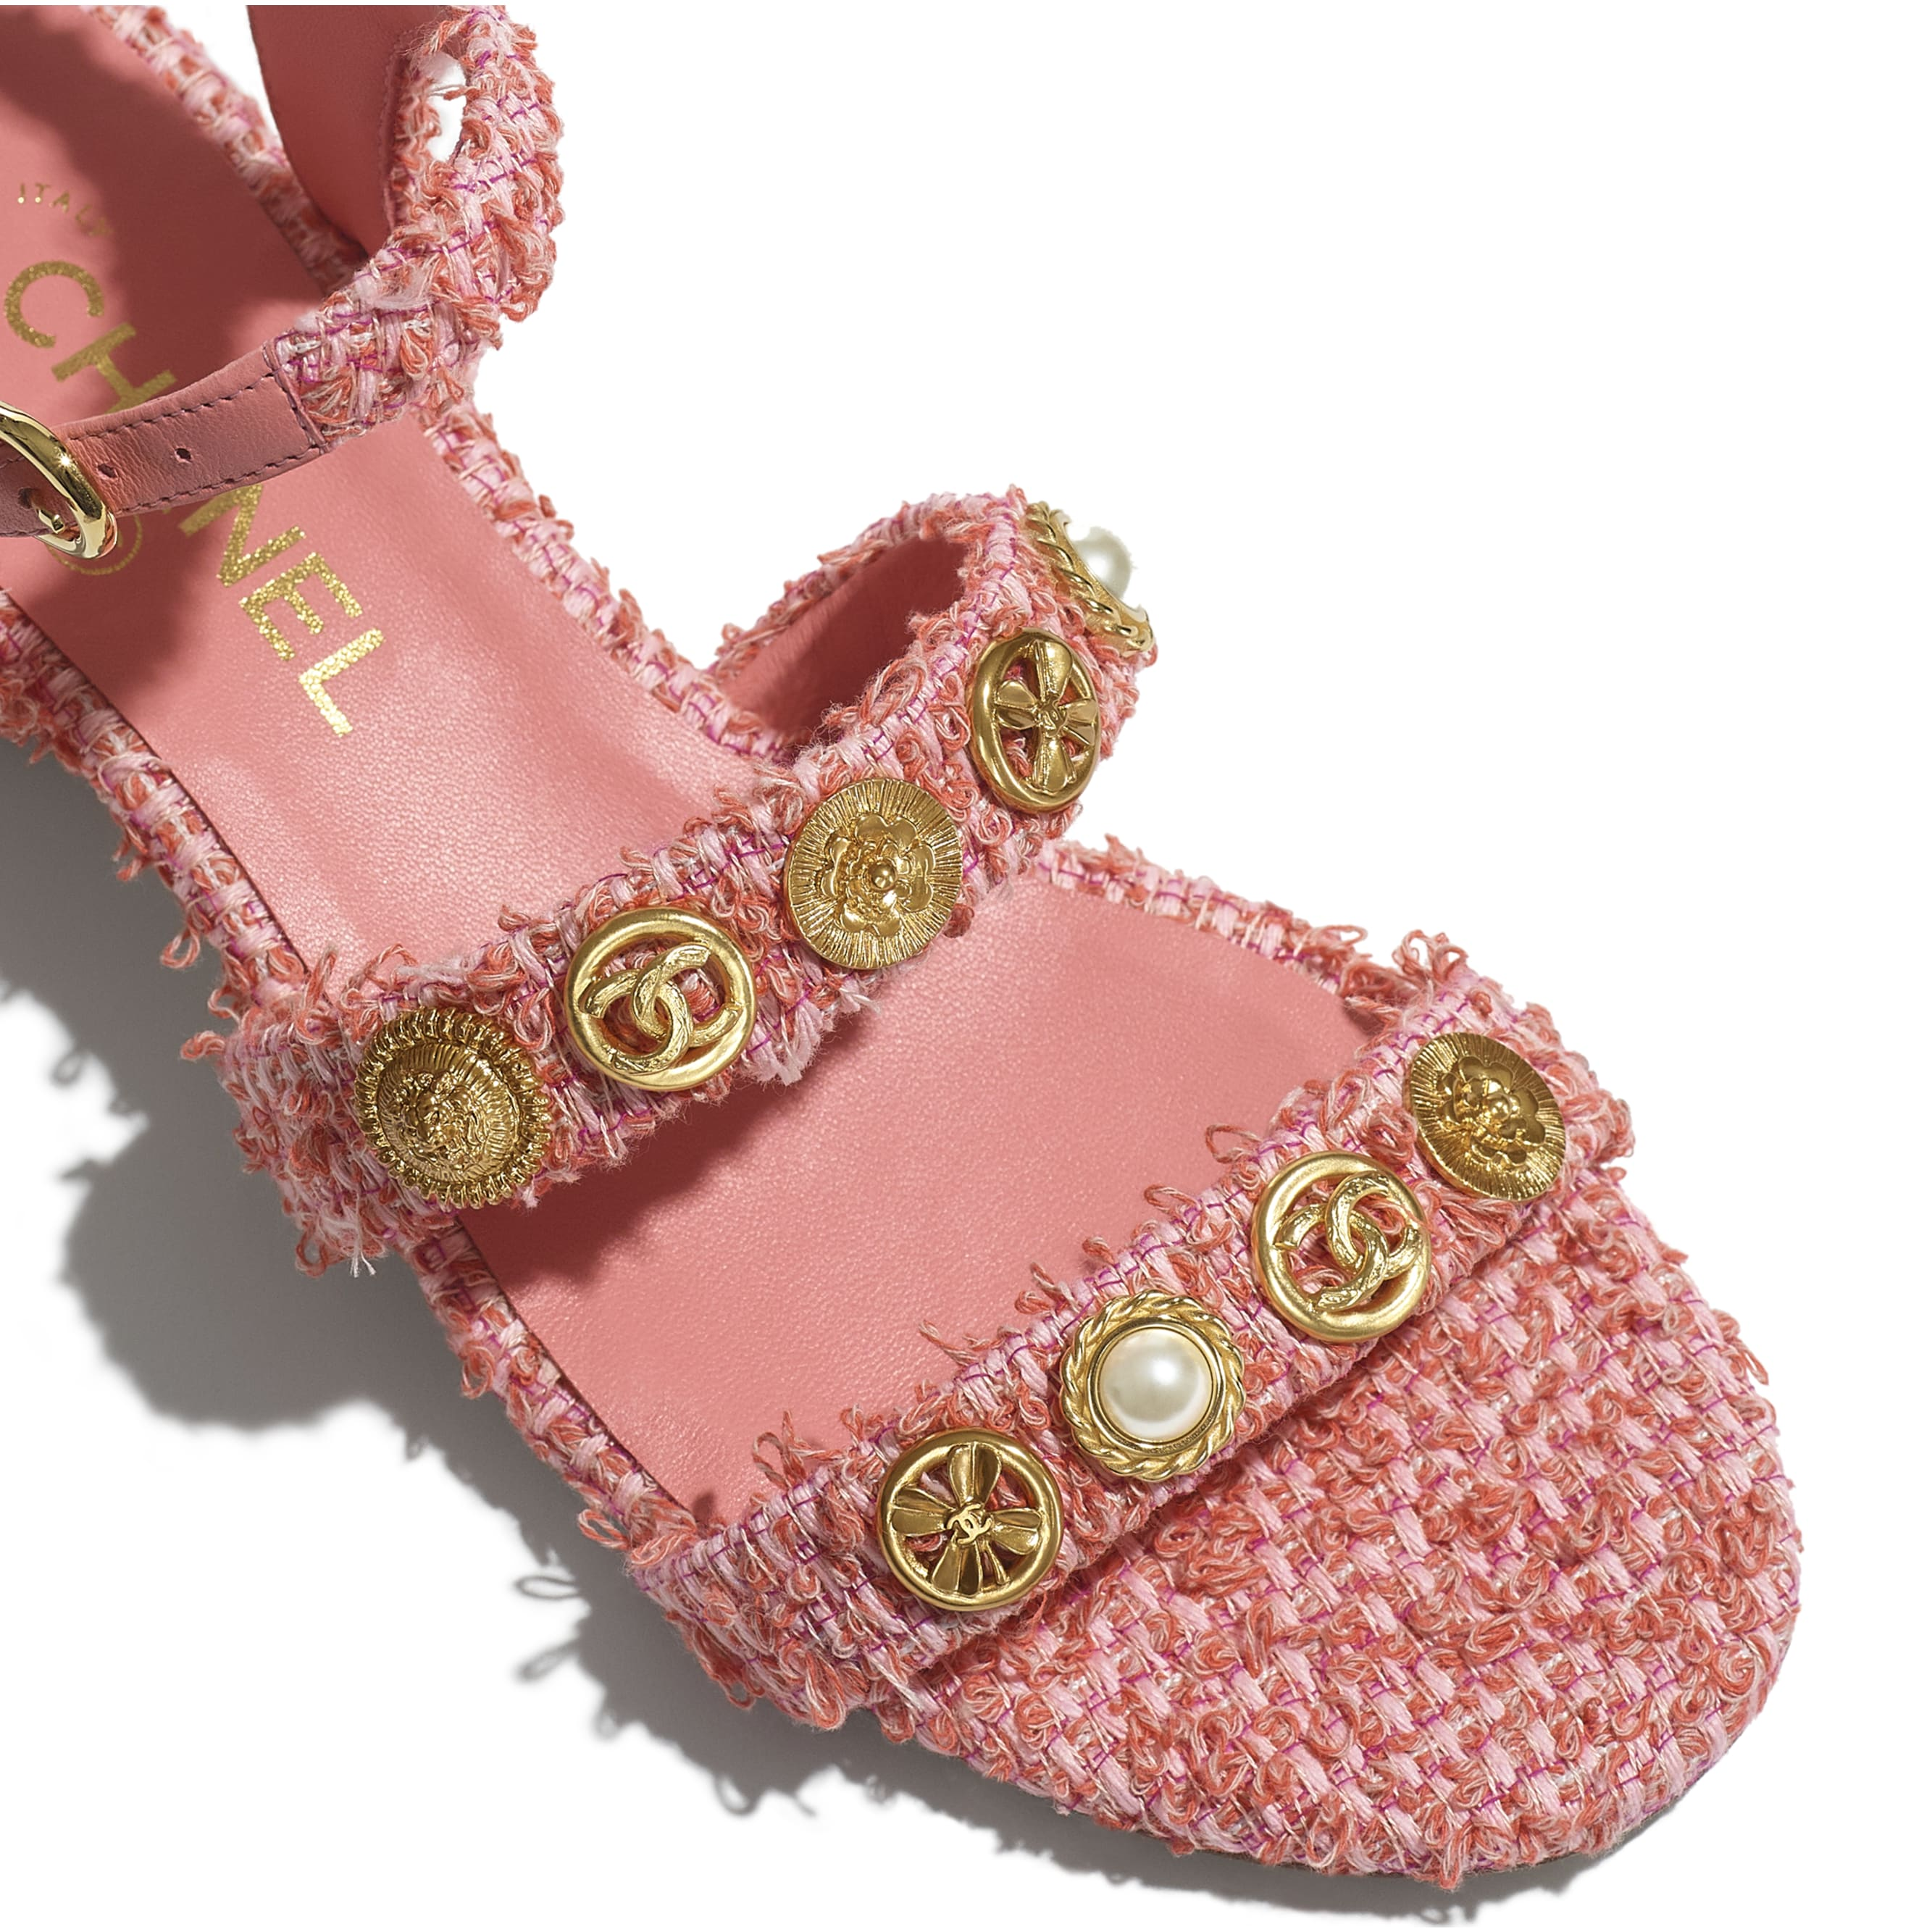 Sandals - Coral & Pink - Cotton Tweed & Jewellery - CHANEL - Extra view - see standard sized version